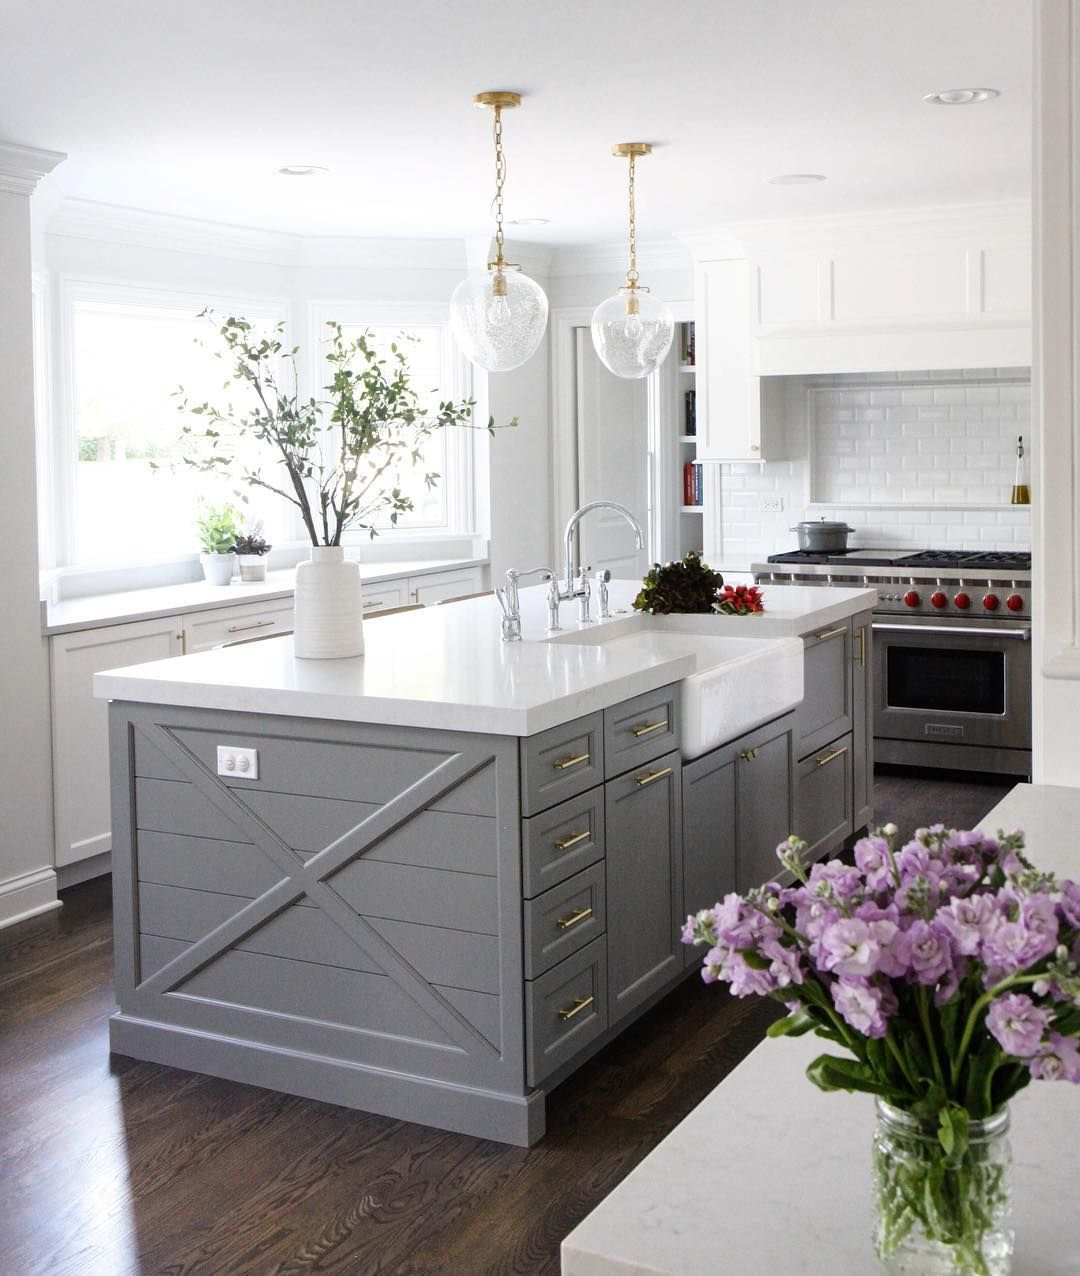 Kitchen Island Paint Color Is Chelsea Gray Benjamin Moore Via Park - Gray kitchen island colors